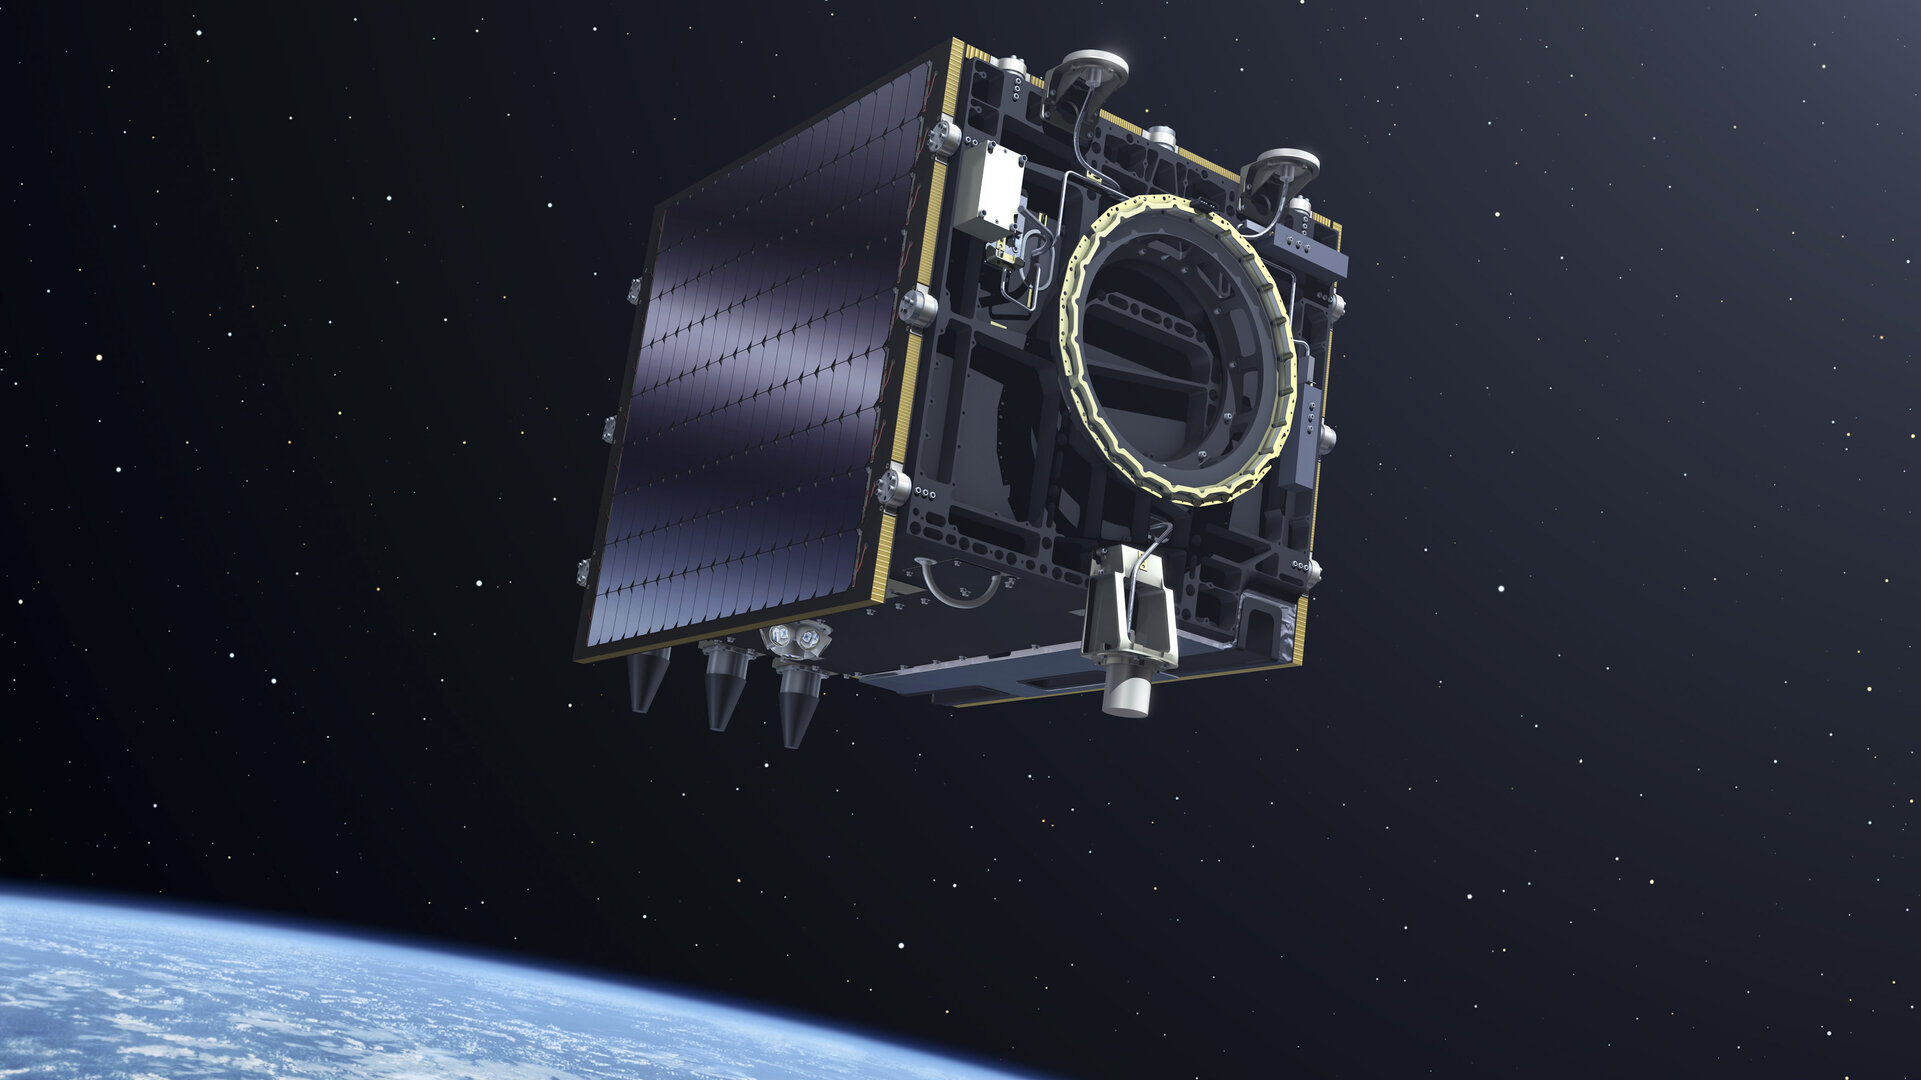 Artistic view of the Proba-V satellite